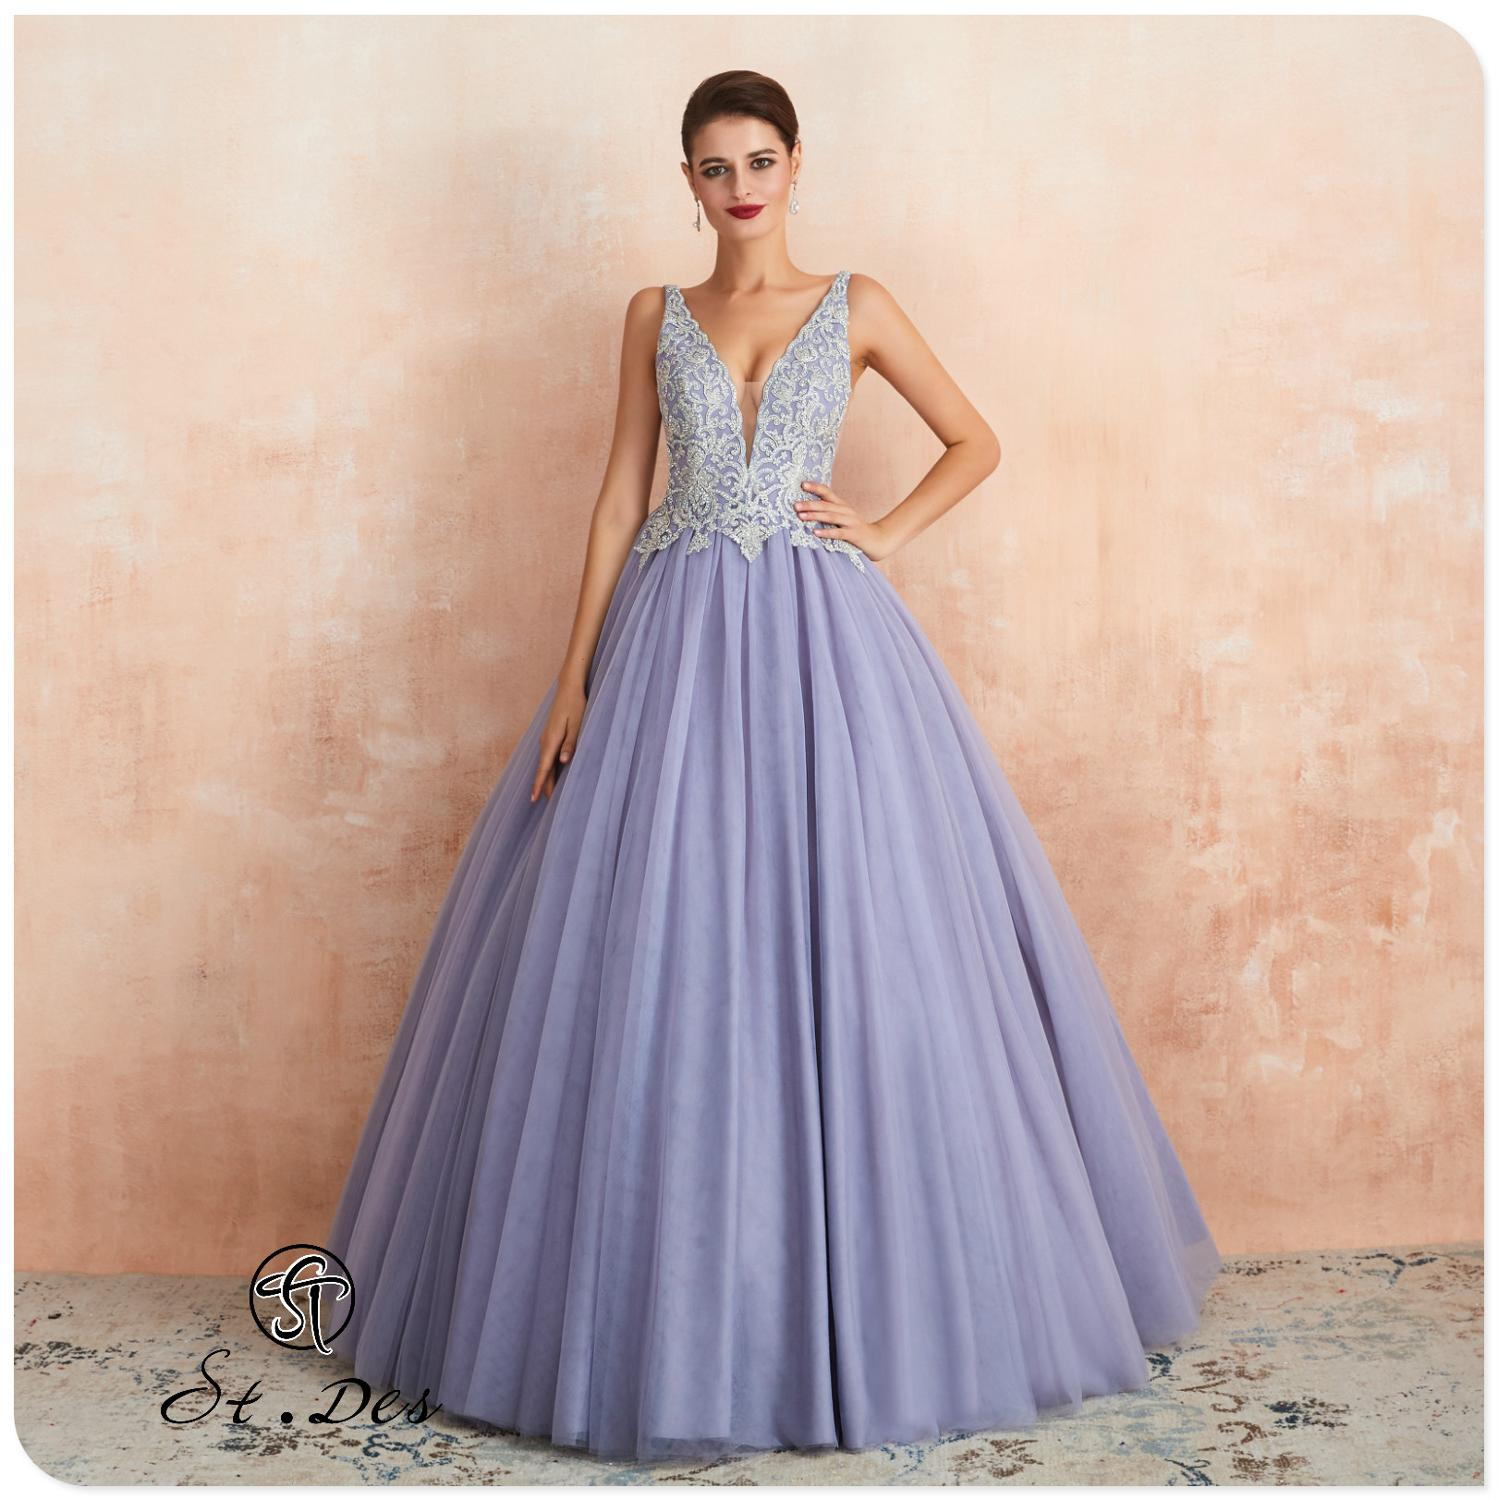 NEW 2020 St.Des A-line V-neck Lilac Russian Sequins Beading Sleeveless Elegant Designer Floor Length Evening Dress Party Dress